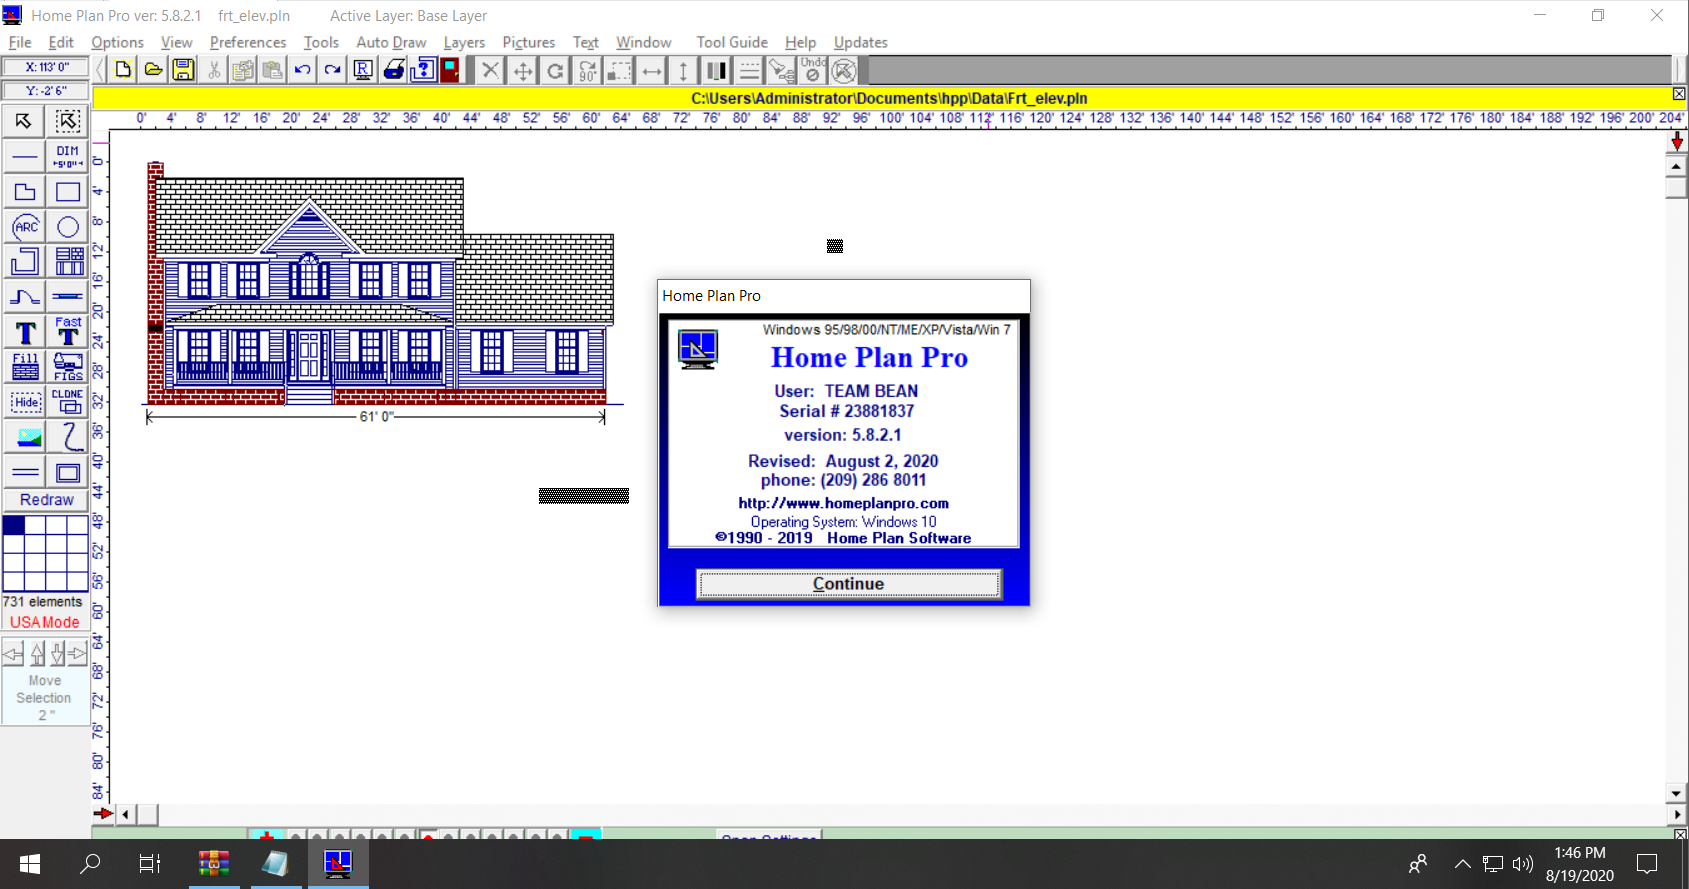 Working with Home Plan Pro 5.8.2.1 full license